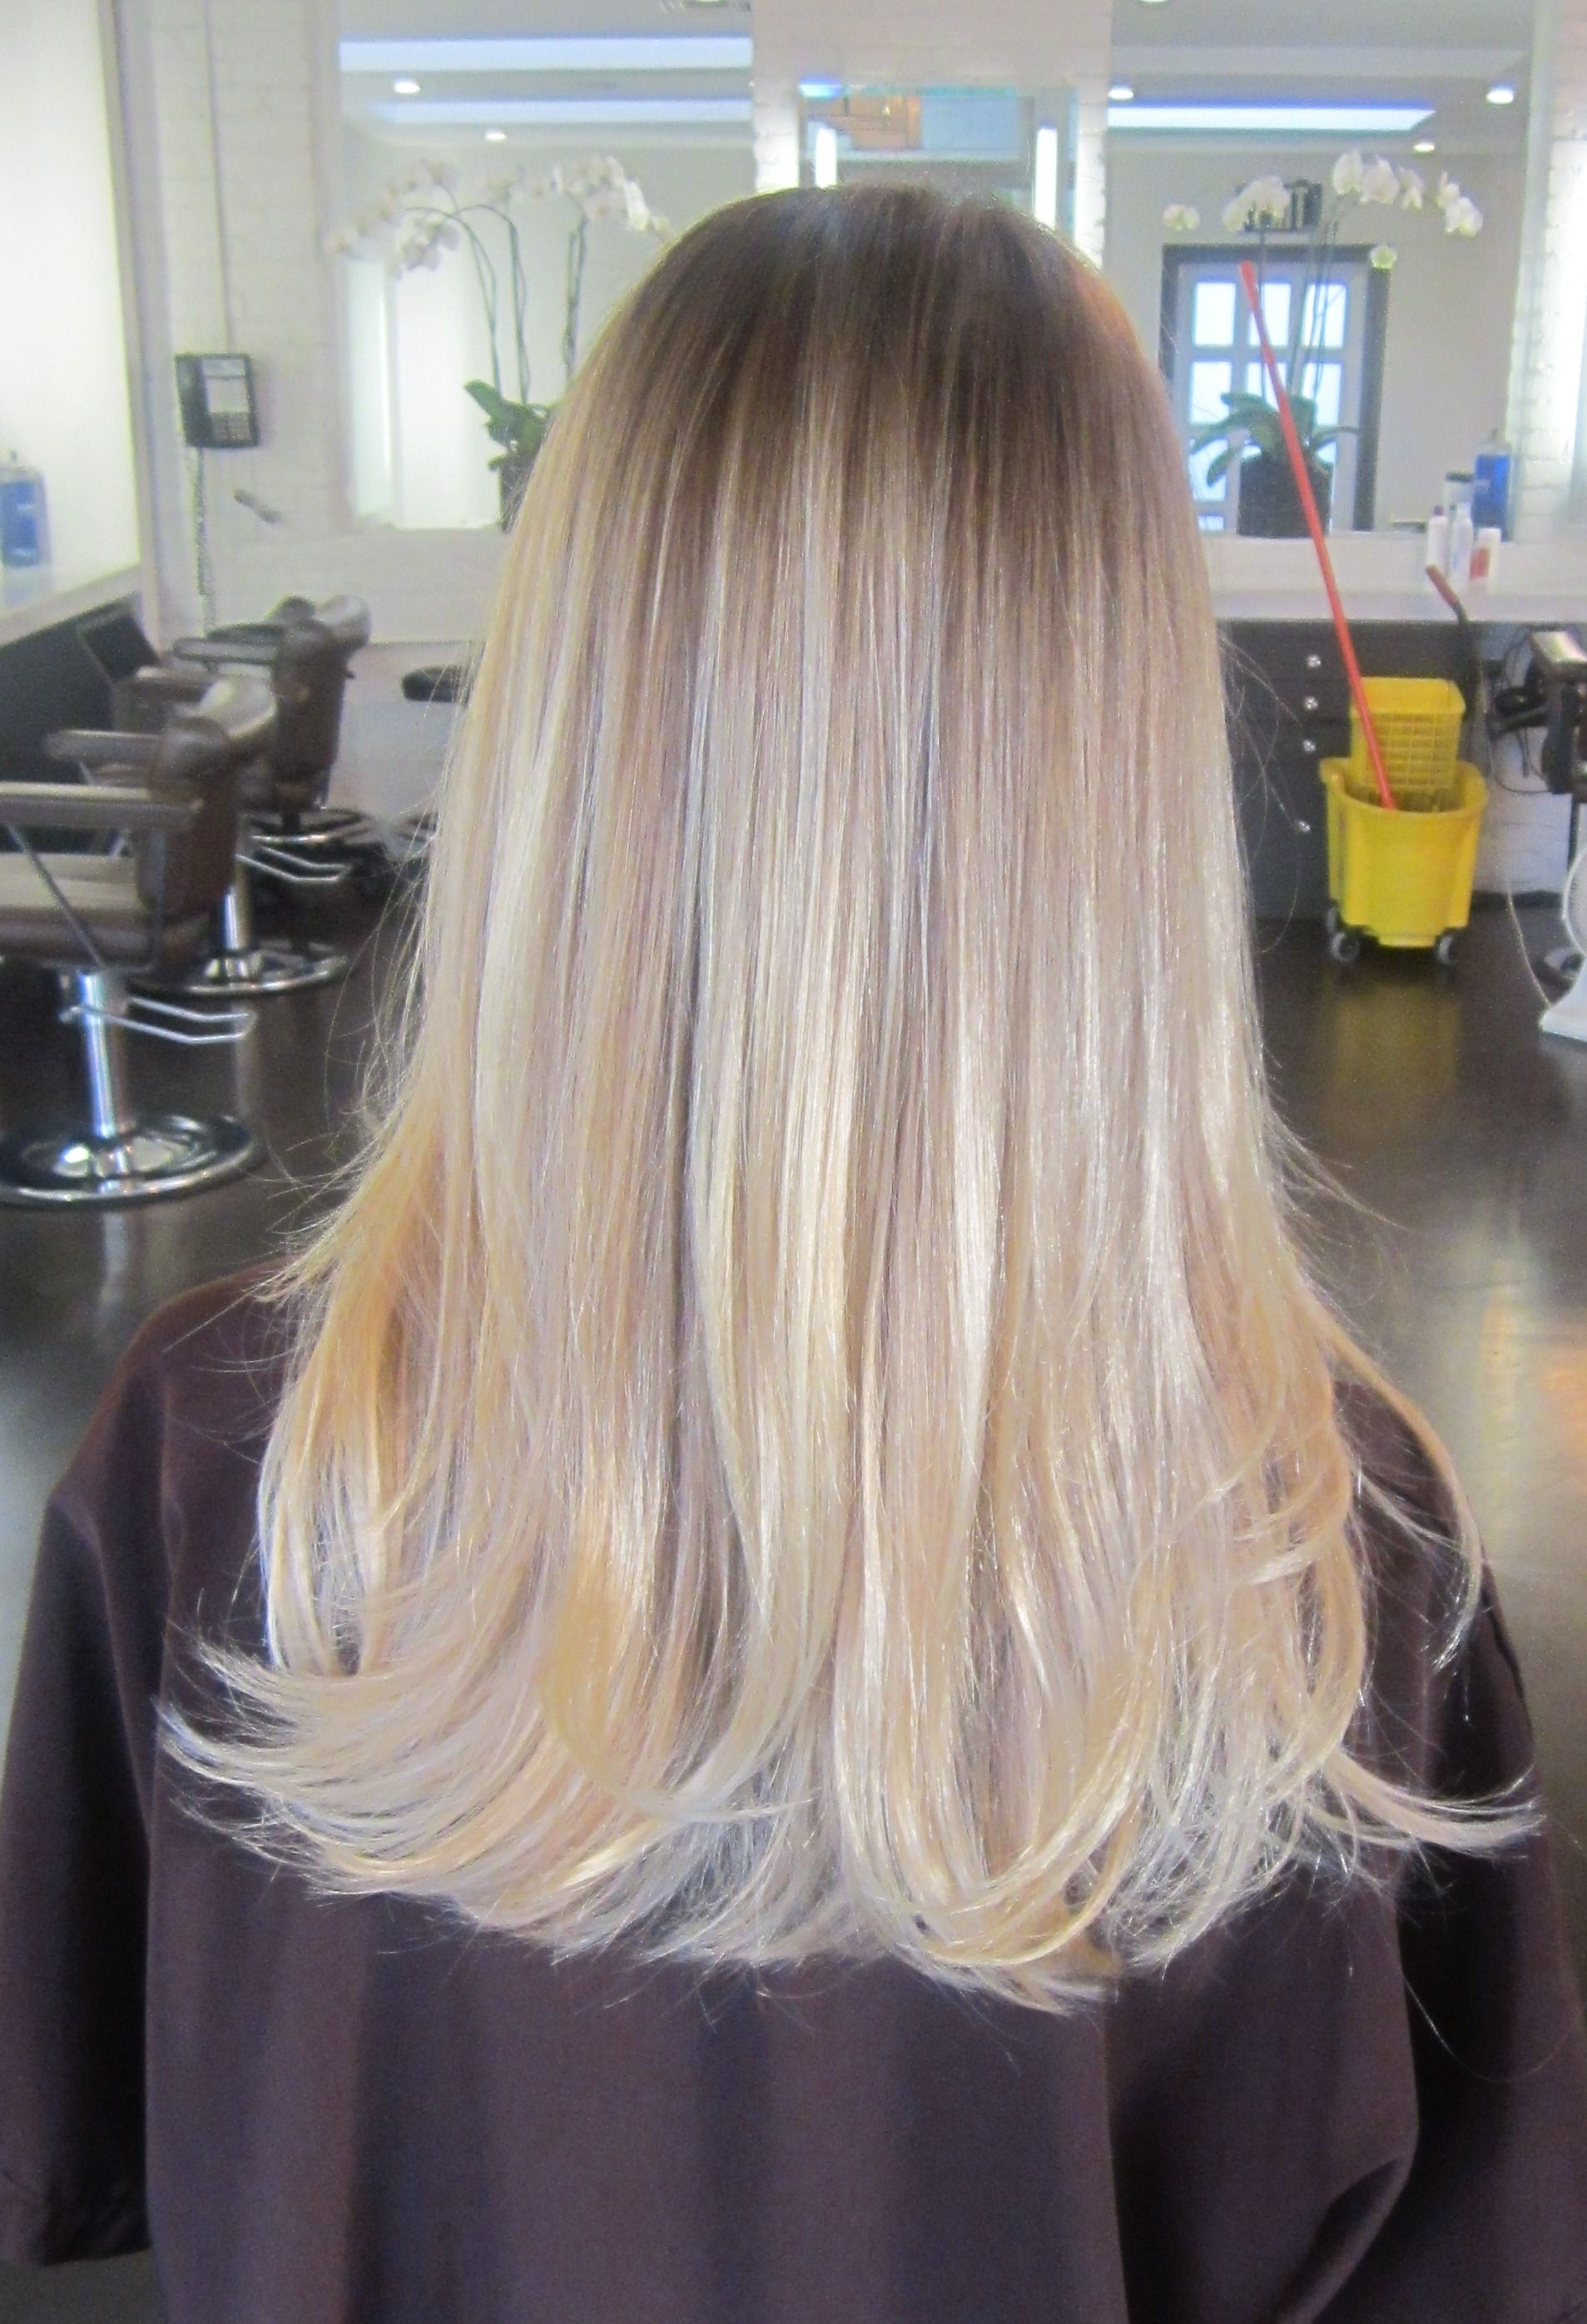 Blonde highlights ideas pinterest - How To Get Cool Toned Blonde Hair